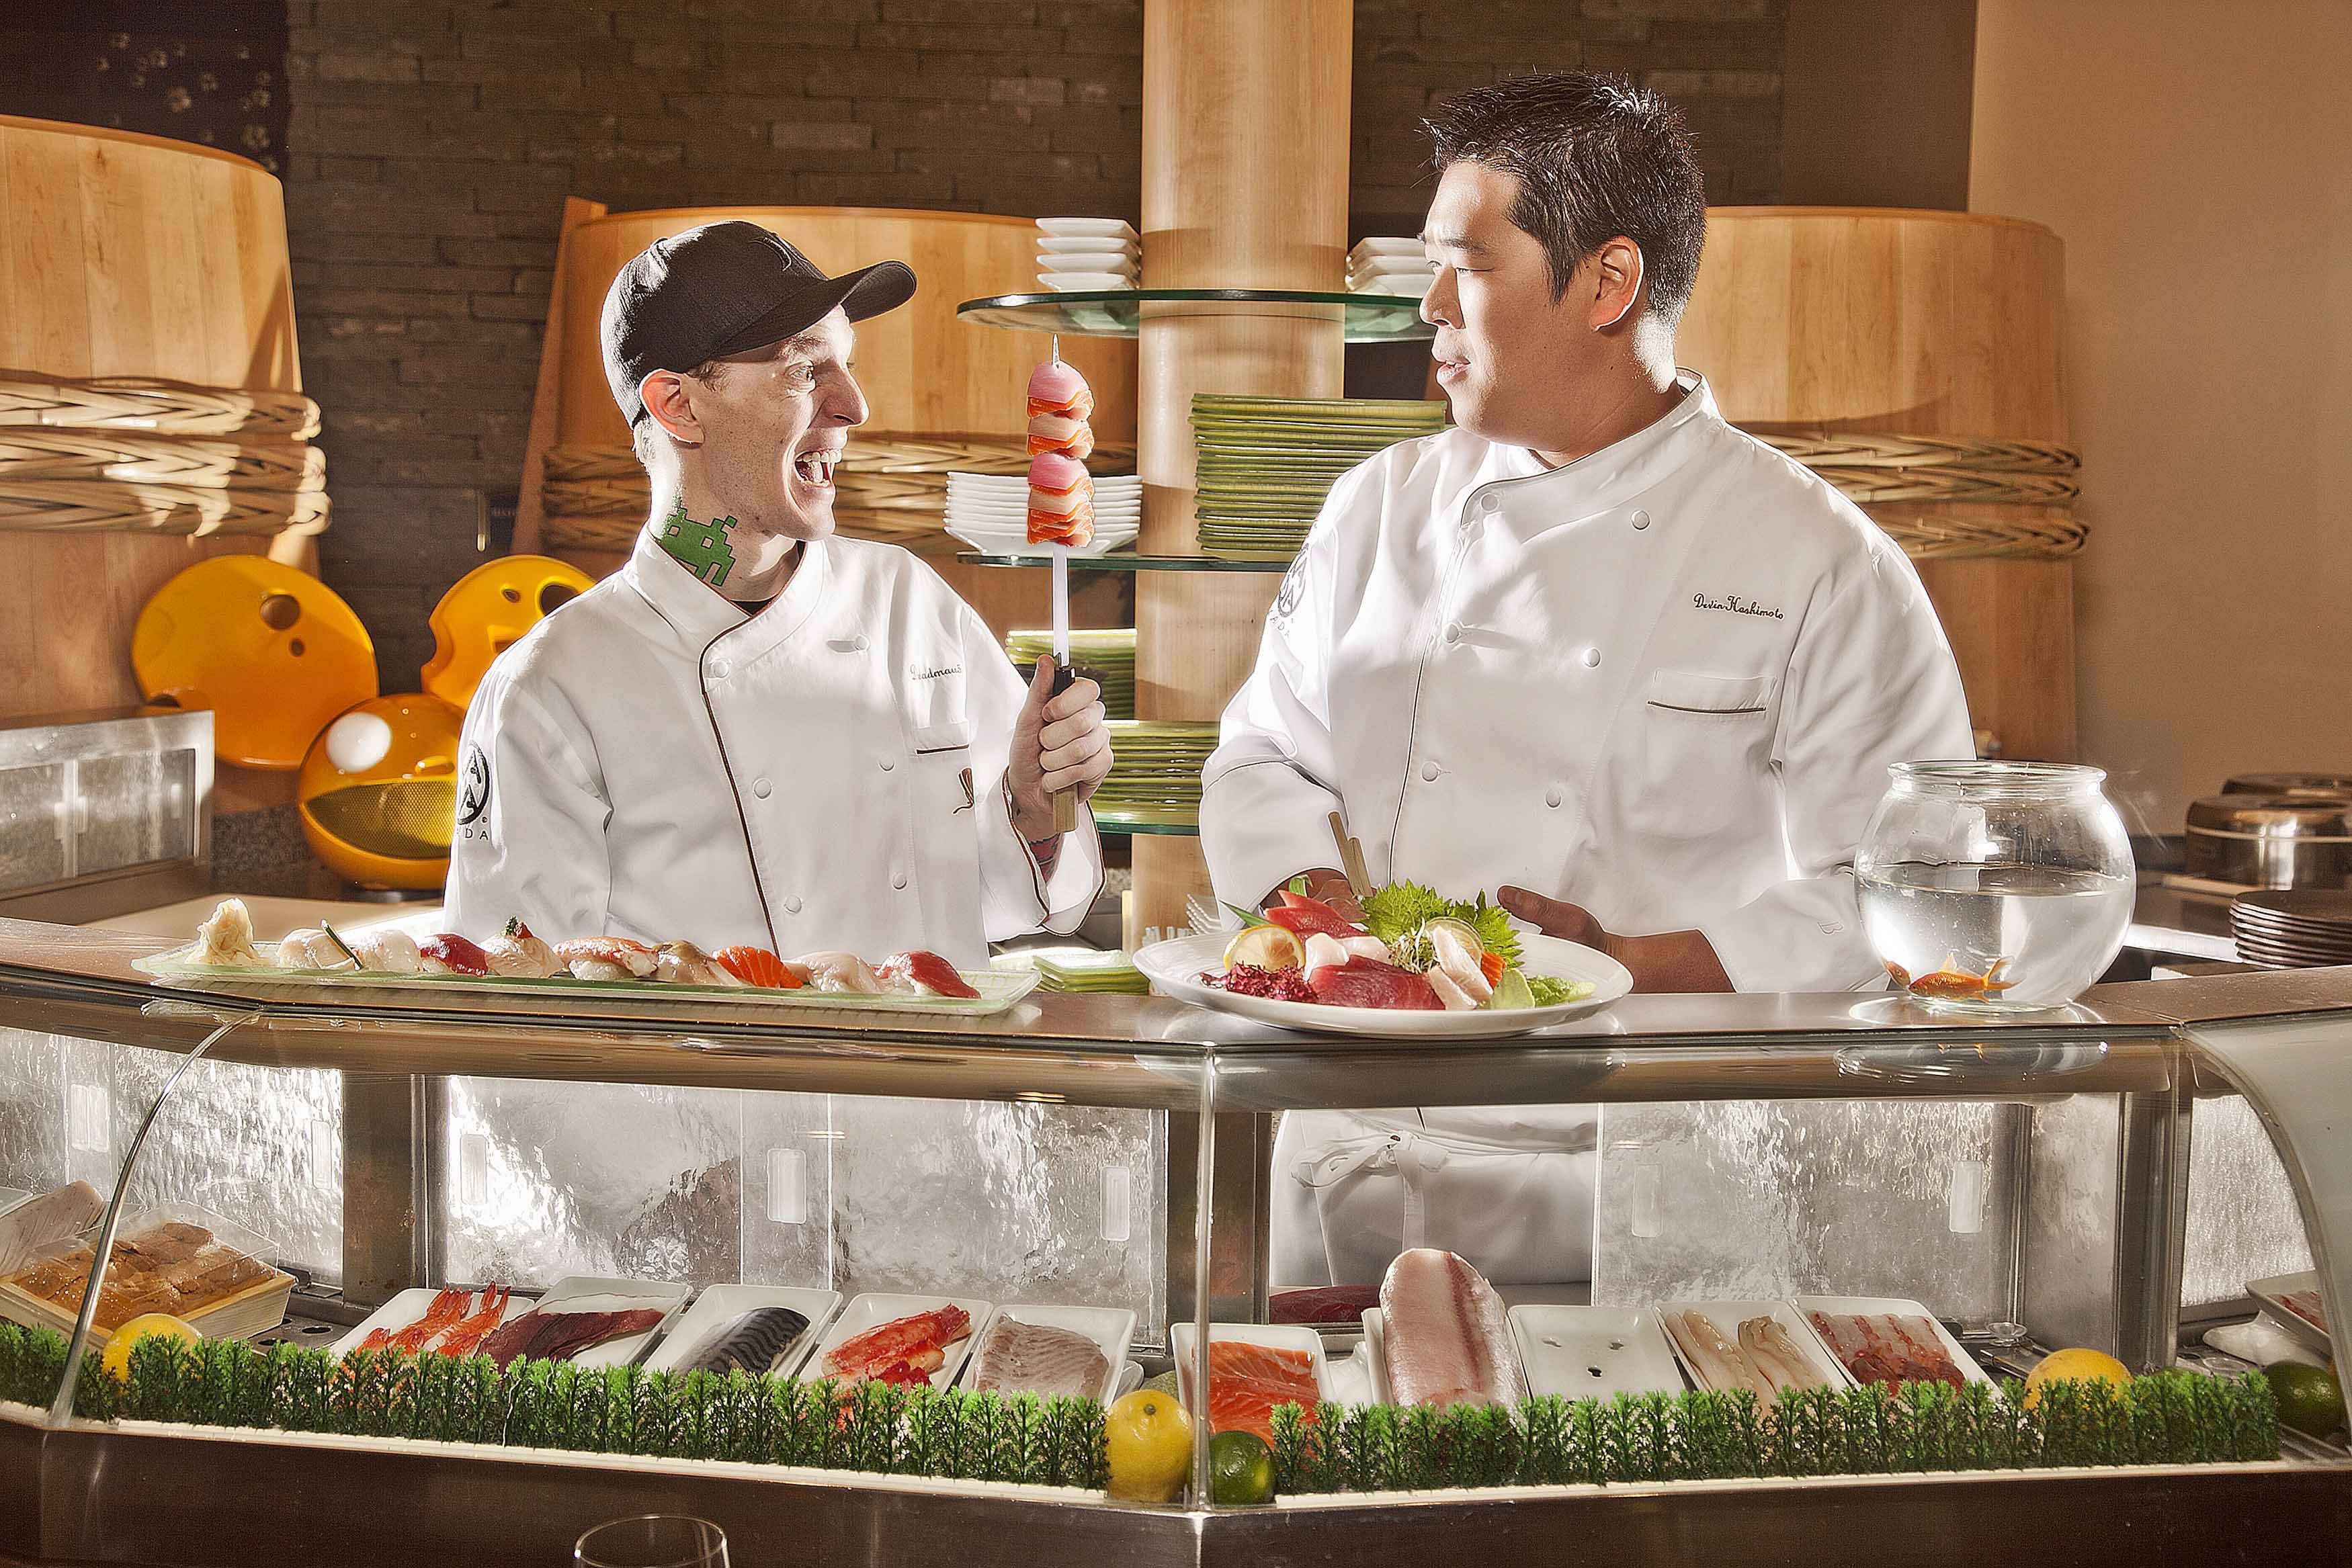 Electronic artist deadmau5 tries his shot as a sushi chef at Okada during his job search at Wynn Las Vegas. Deadmau5 has developed an exclusive partnership for 2012 with XS, Encore Beach Club, and Wynn Las Vegas. Photo credit: Brian Brown Photography.